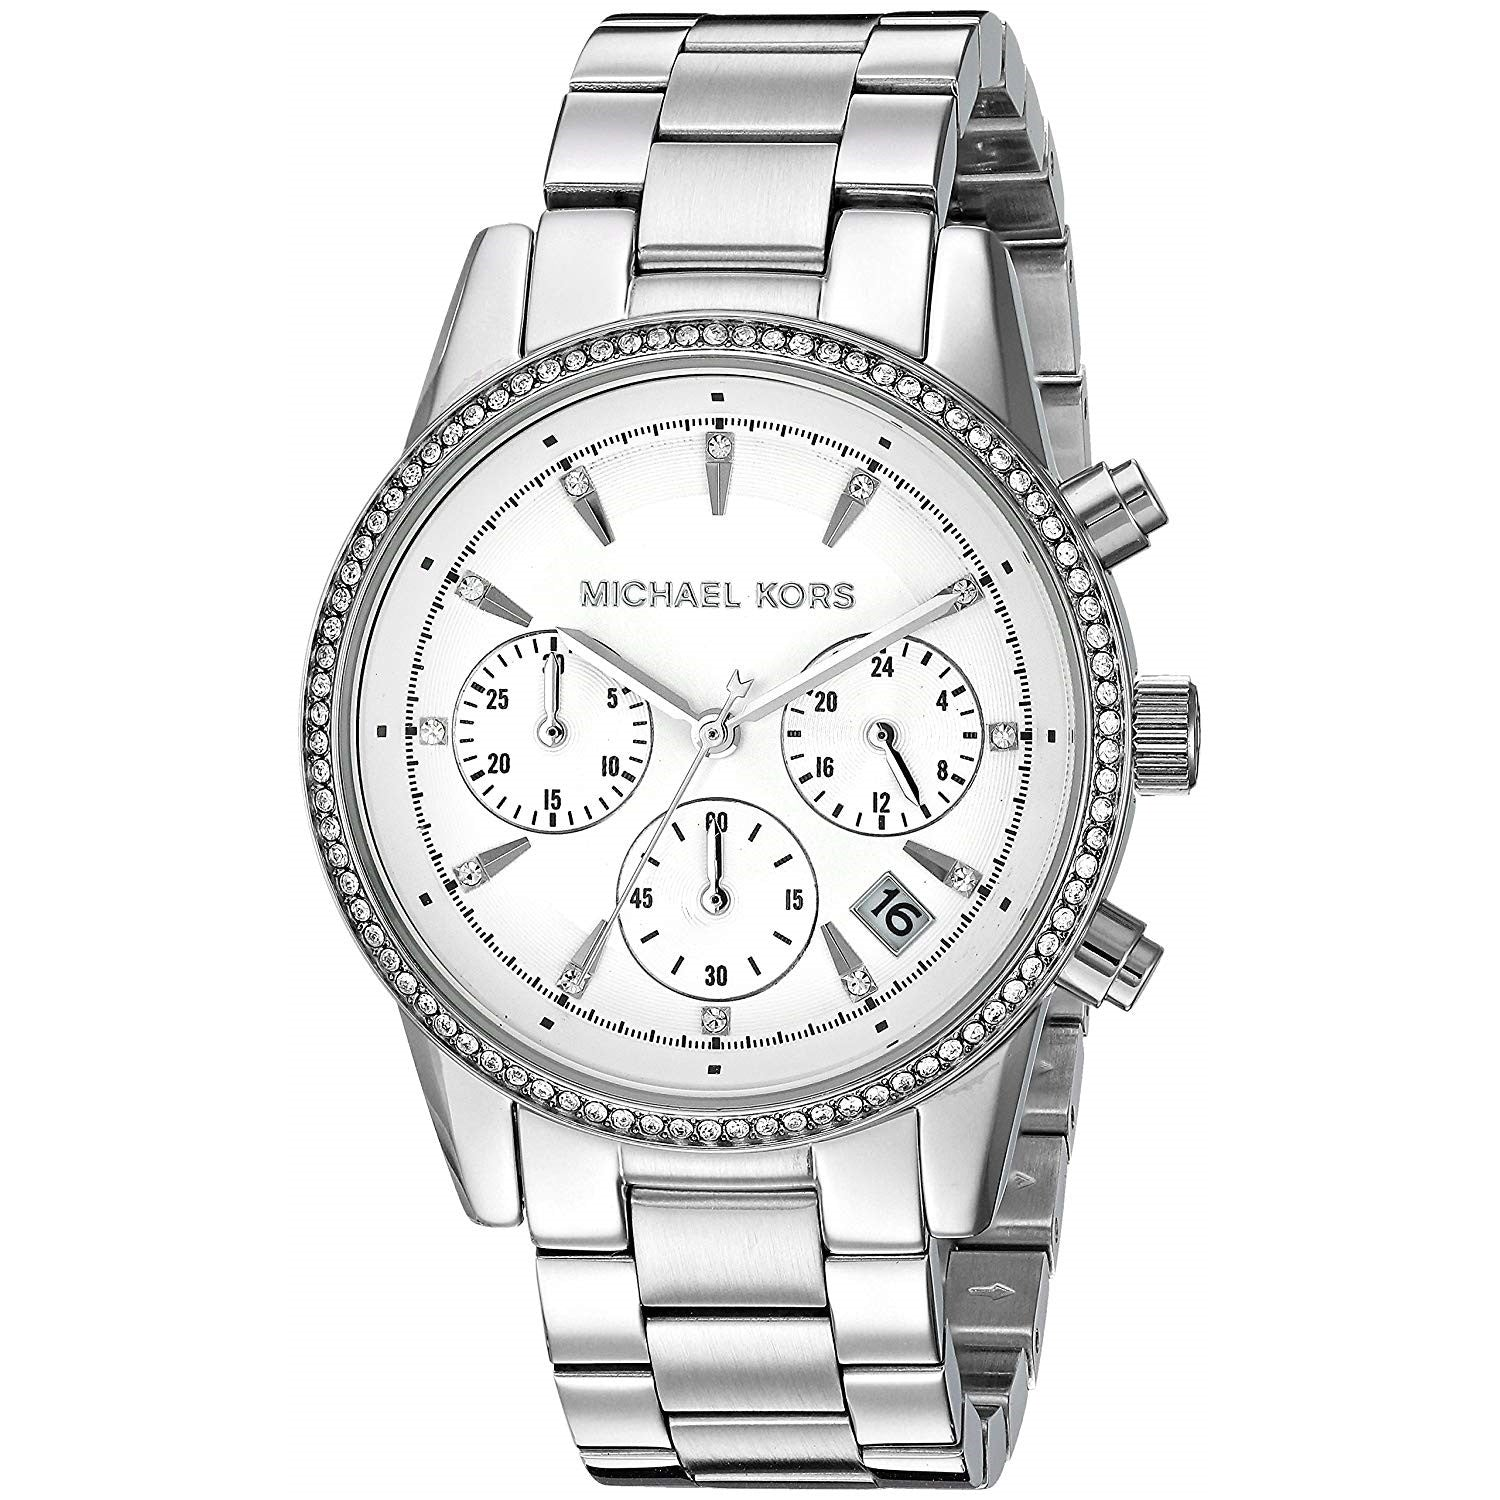 Details about Michael Kors MK6428 Ritz 39MM Women's Chronograph Crystal Stainless Steel Watch